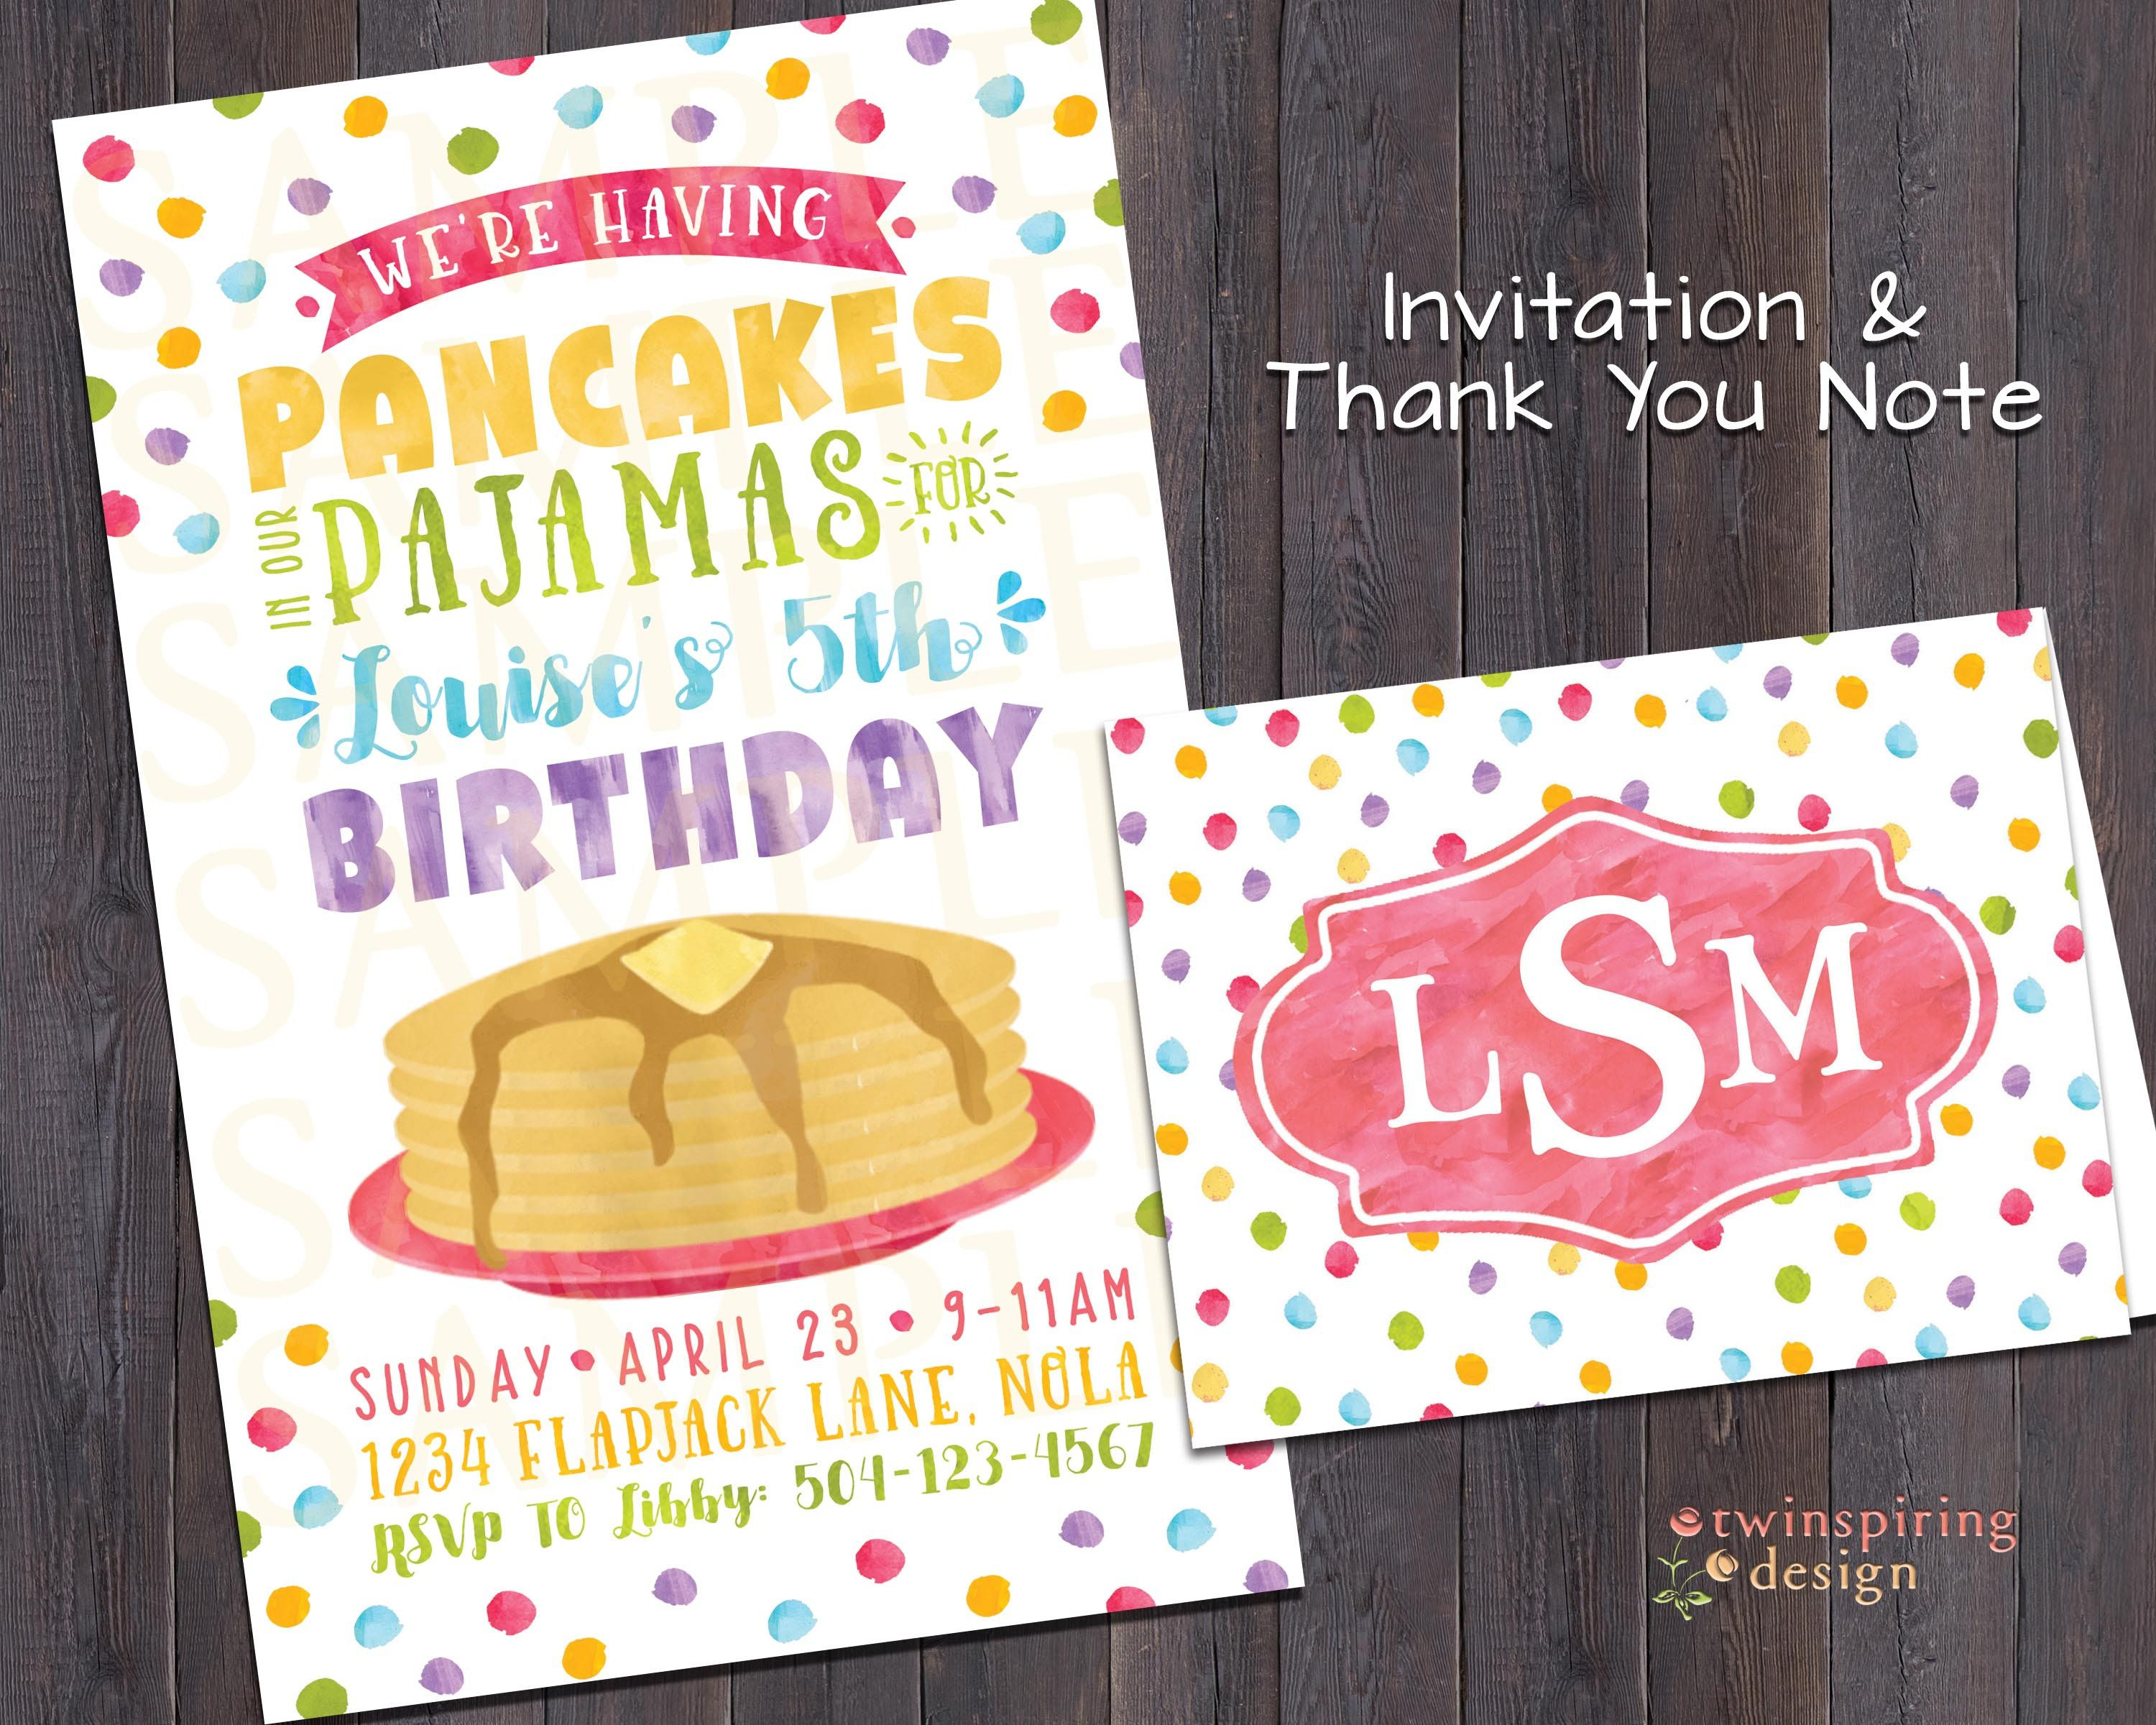 Such a cute theme for a morning birthday party pancake pajama such a cute theme for a morning birthday party pancake pajama birthday party invitation stopboris Images